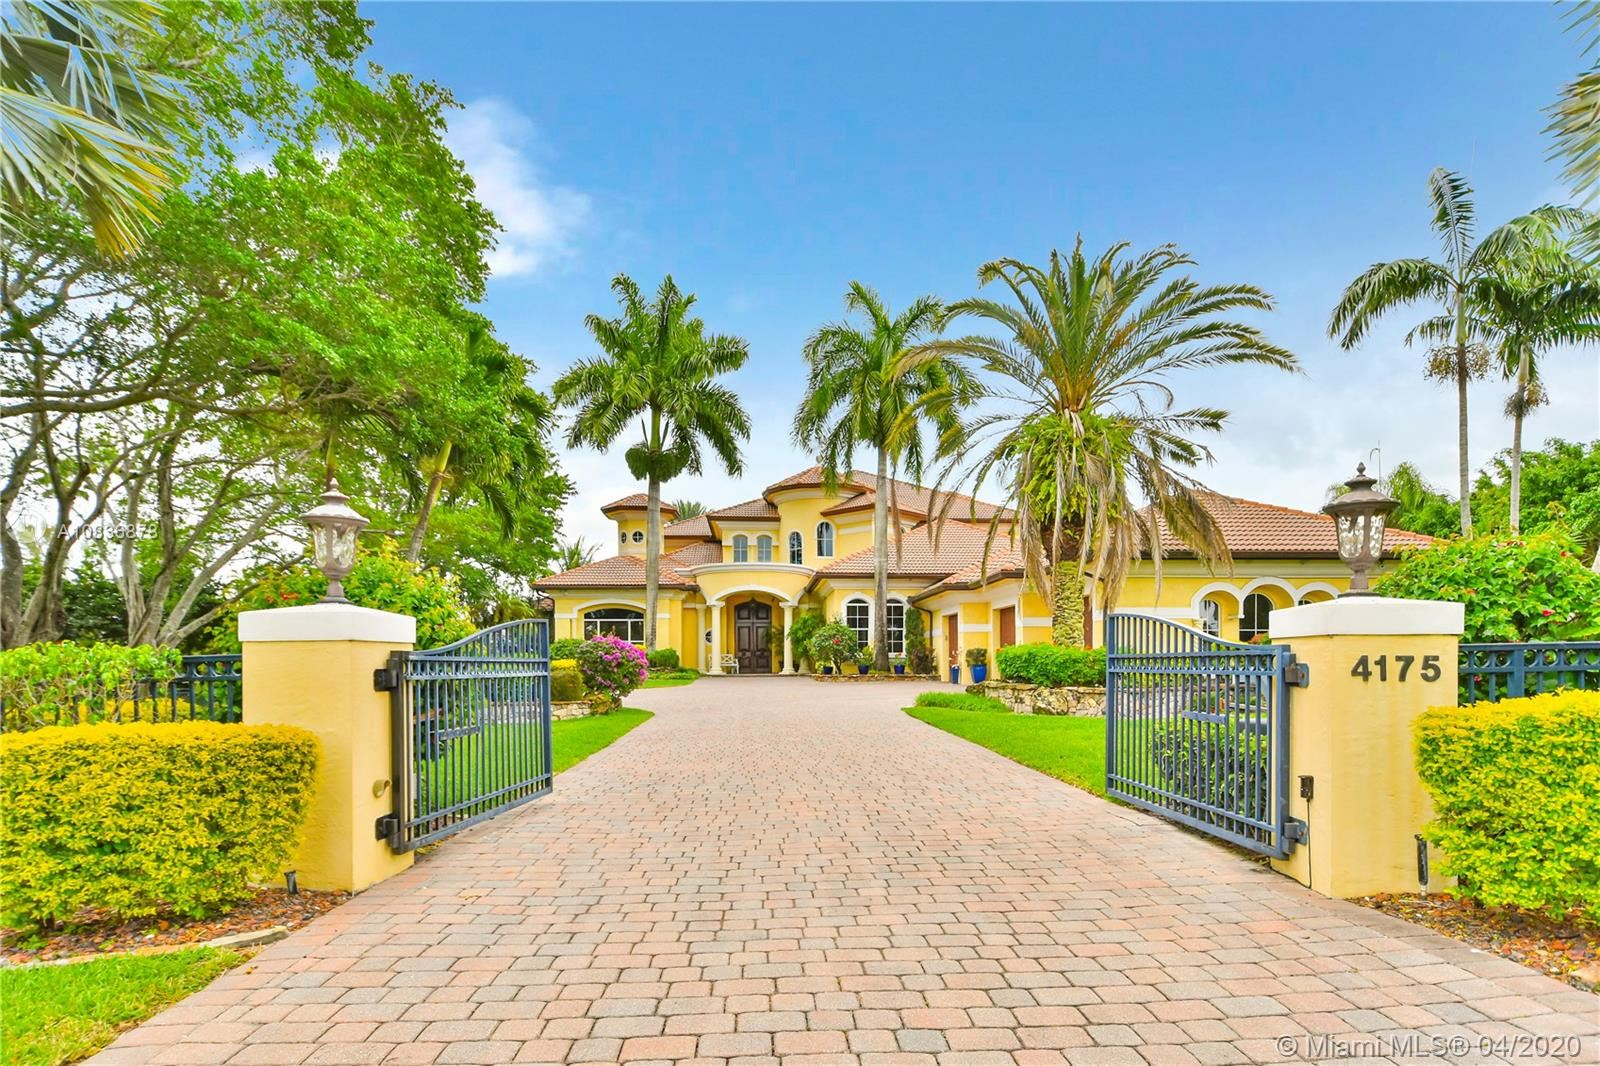 4175 NW 100th Ave, Coral Springs, FL 33065 - #: A10836878